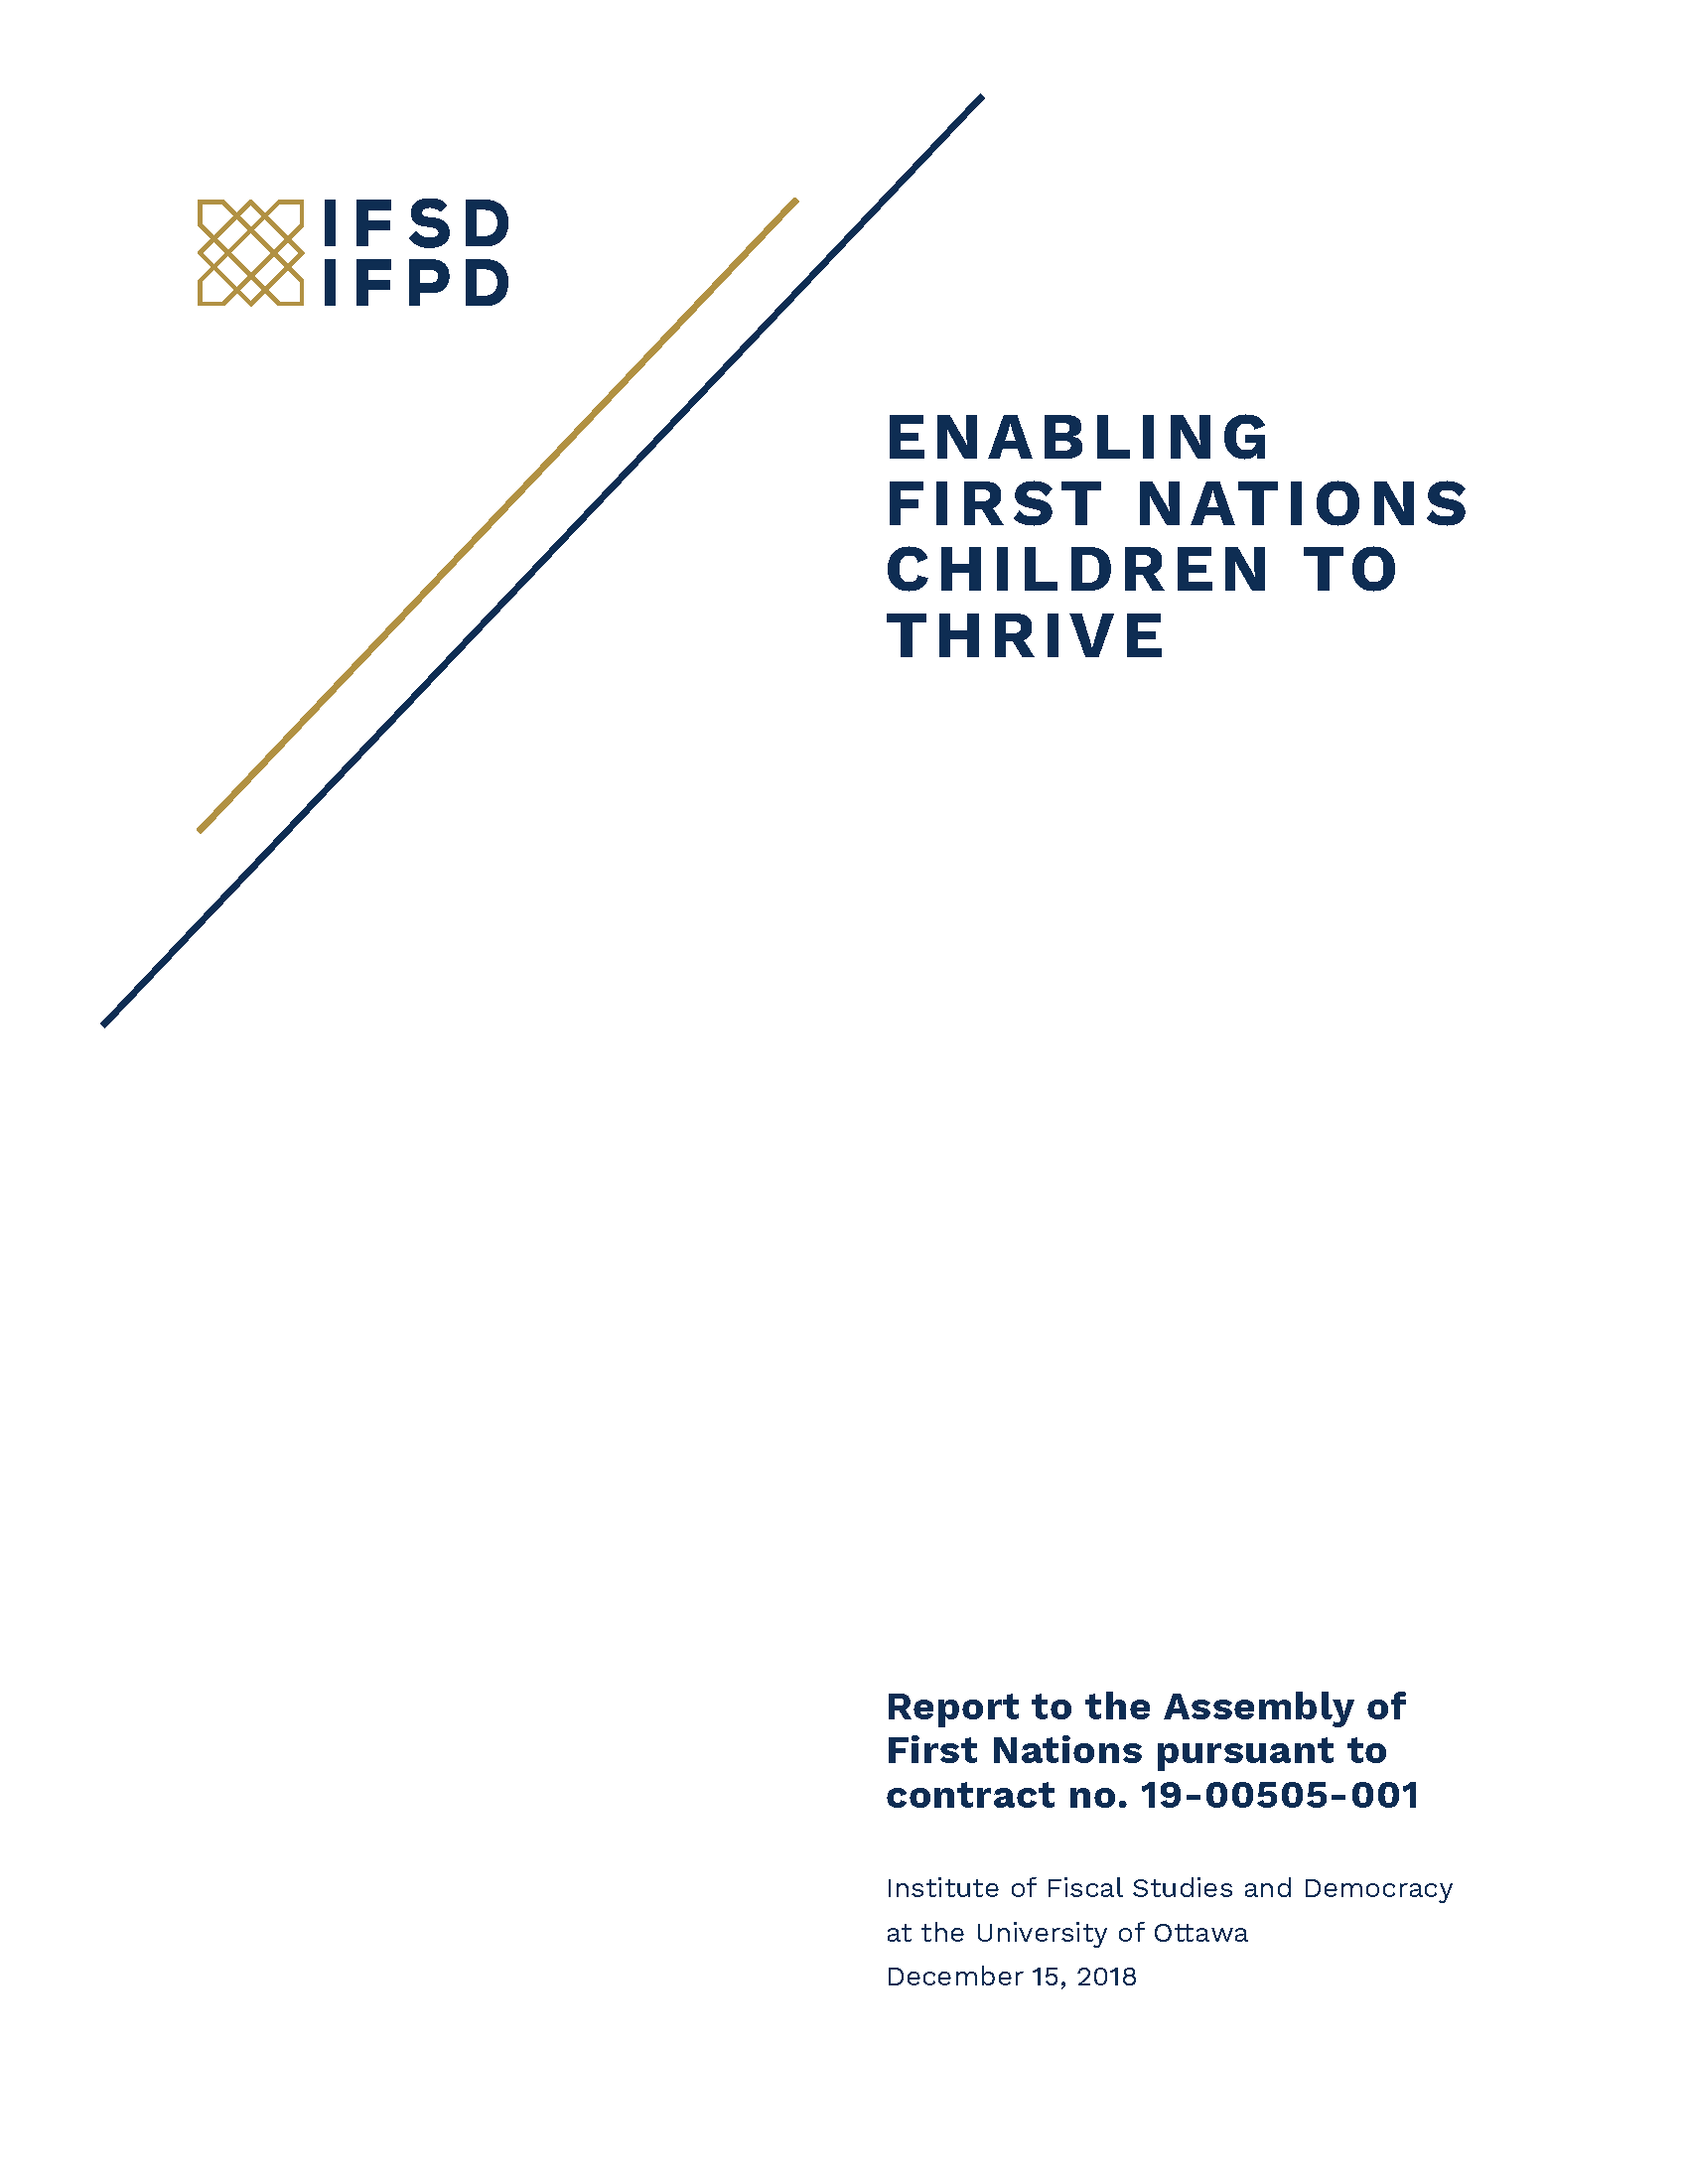 IFSD First Nations Report